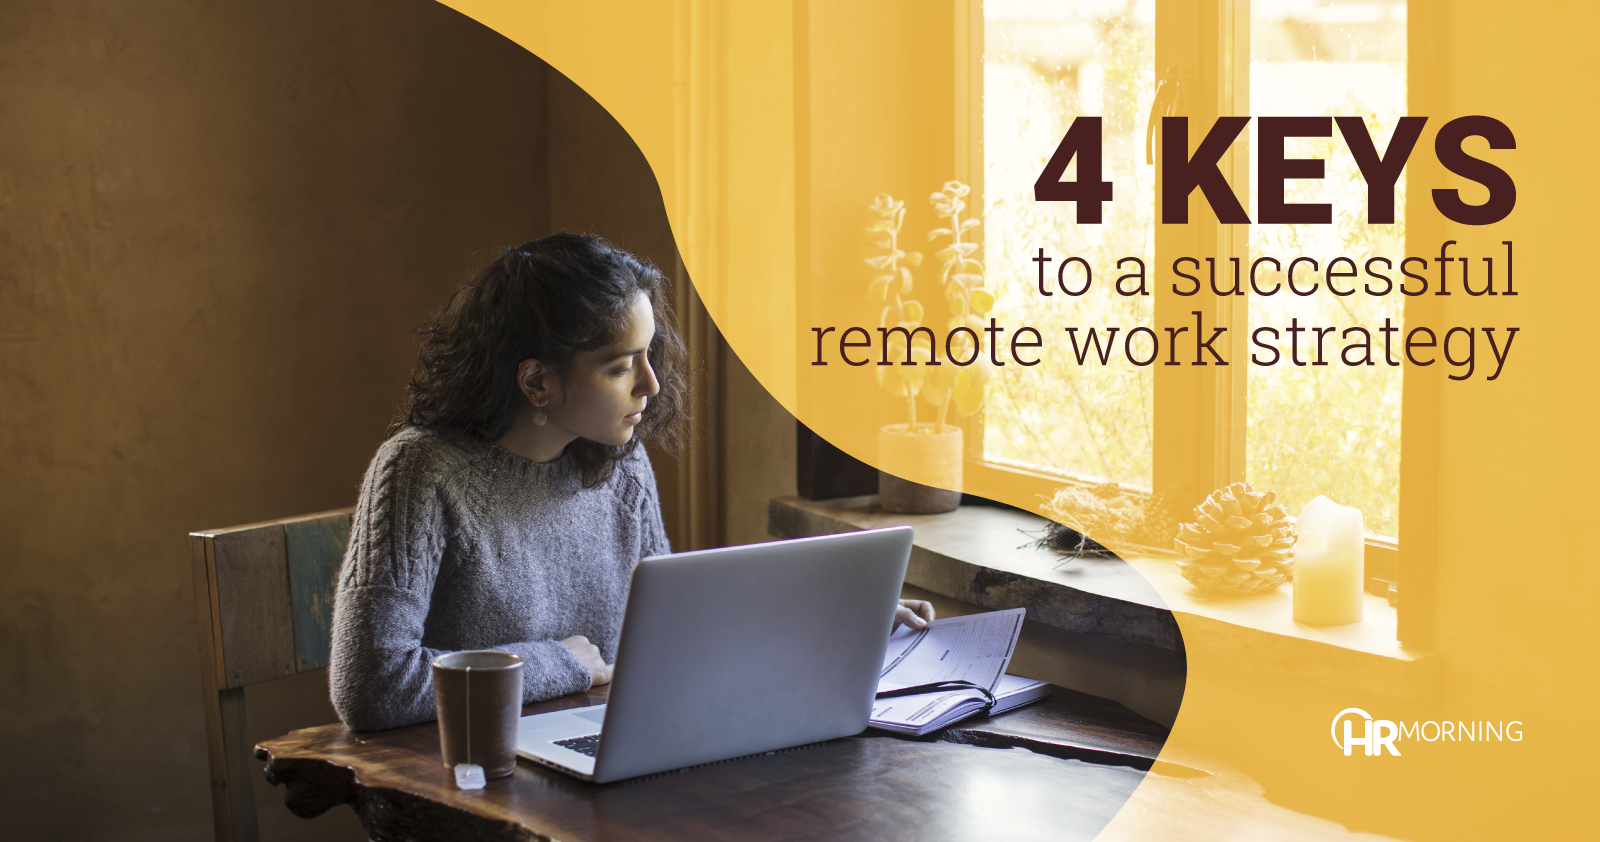 4 keys to a successful remote work strategy